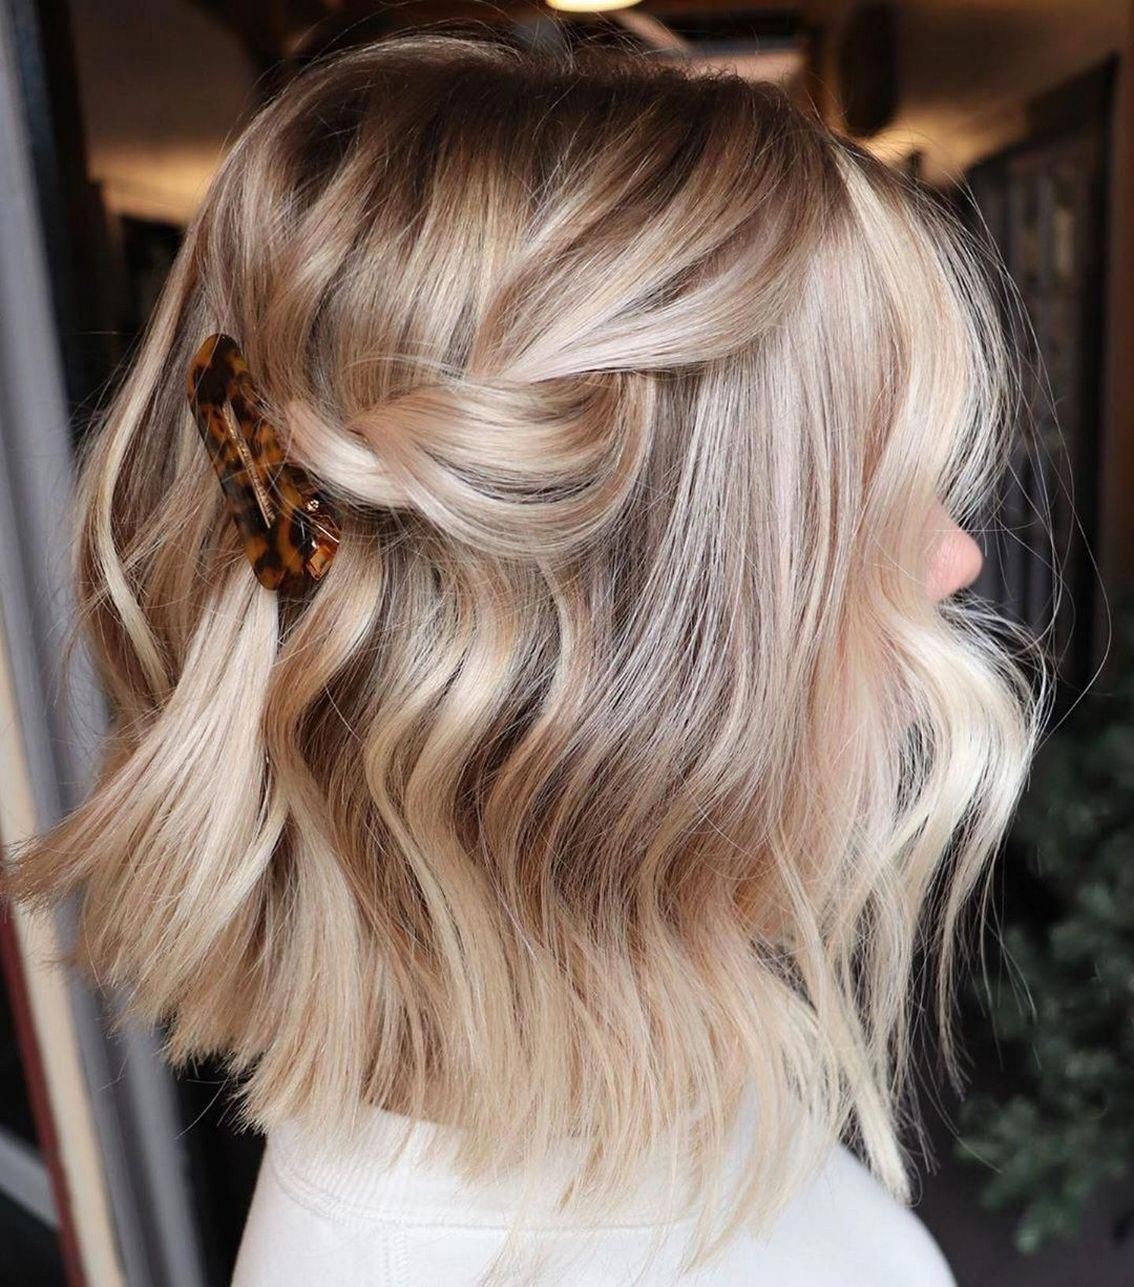 60 Ideas How To Do An Balayage Ombre On Short Hair In 2020 Short Hair Balayage Hair Styles Short Hair Styles